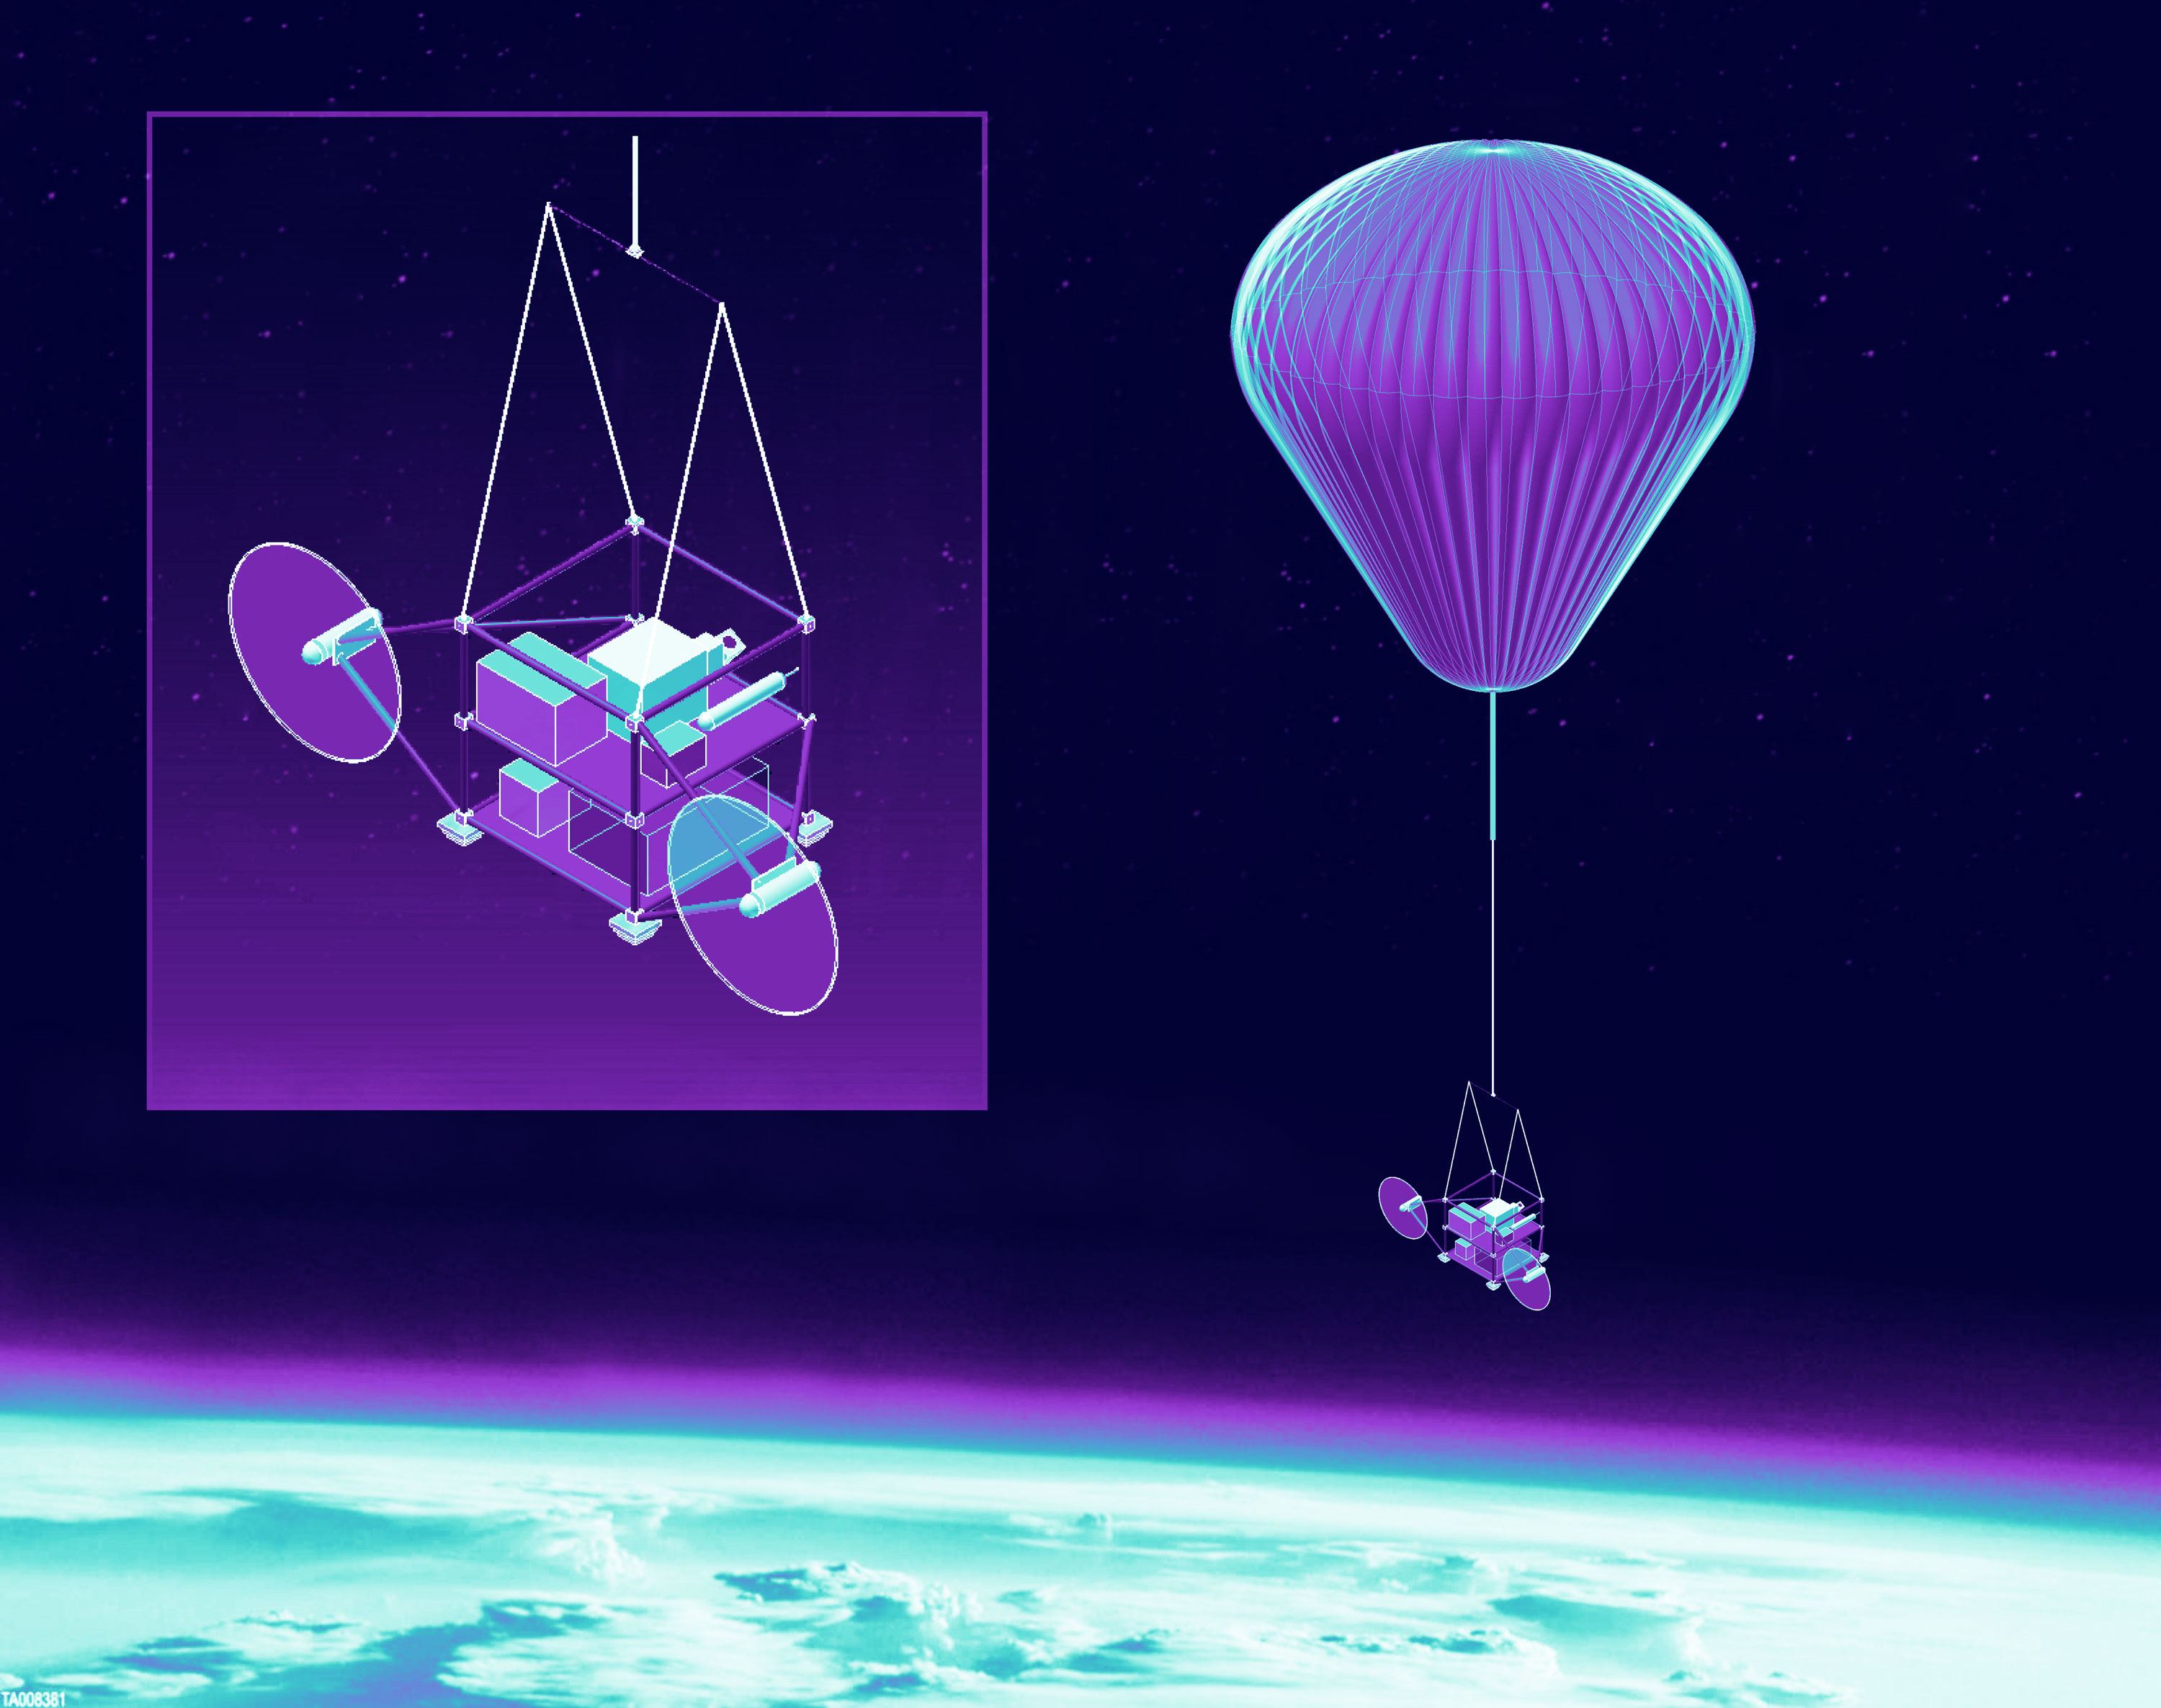 Space balloon